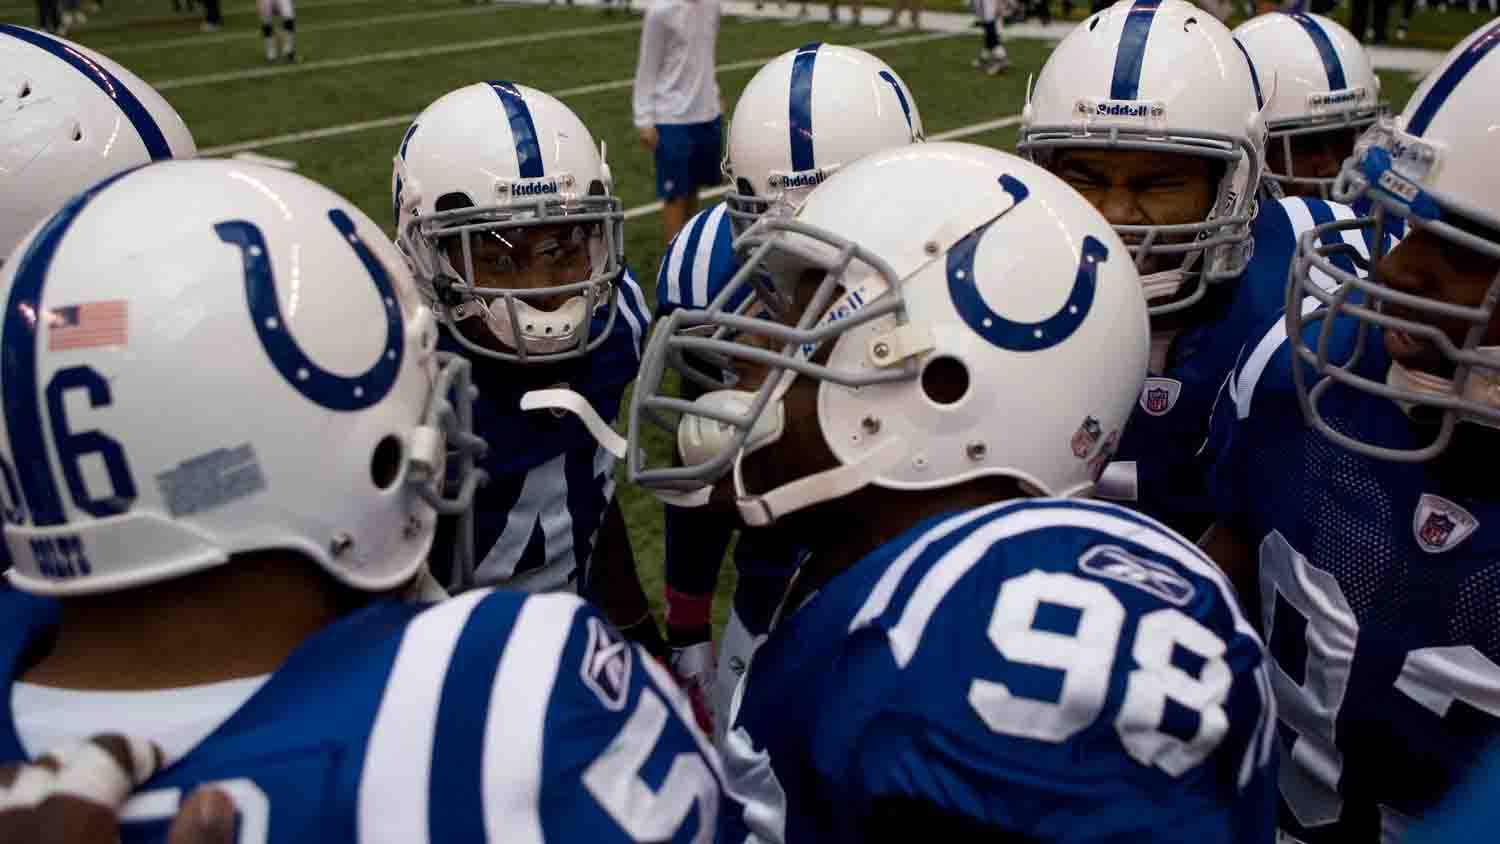 Indianapolis Colts 5